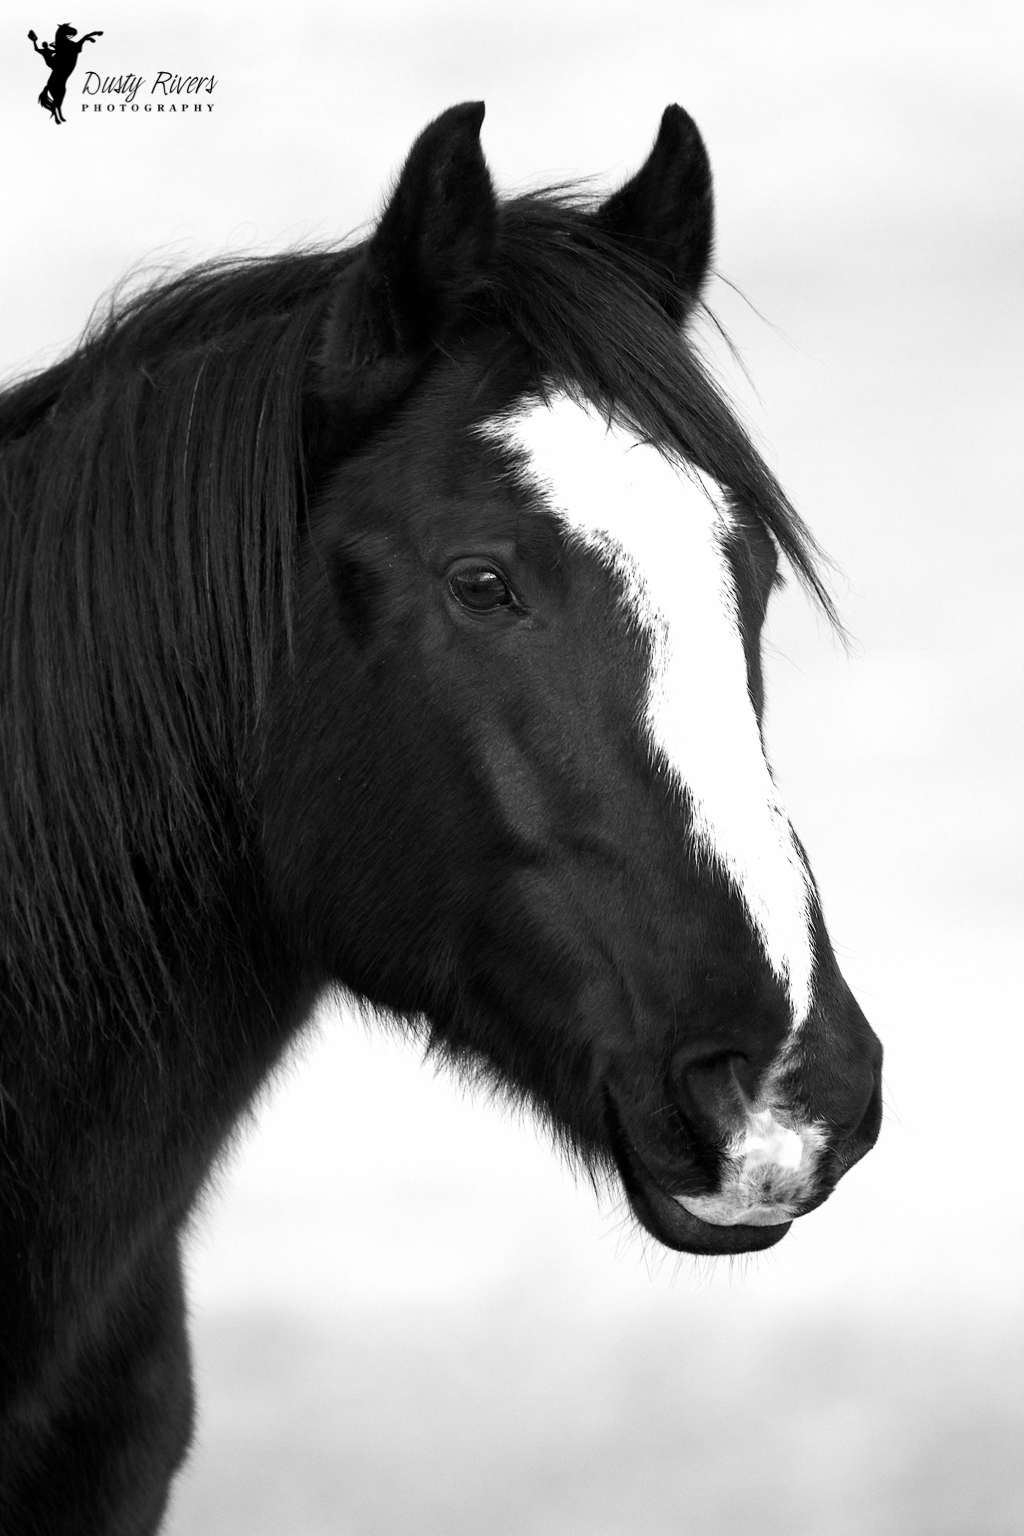 Black And White Horse Dusty Rivers Photography